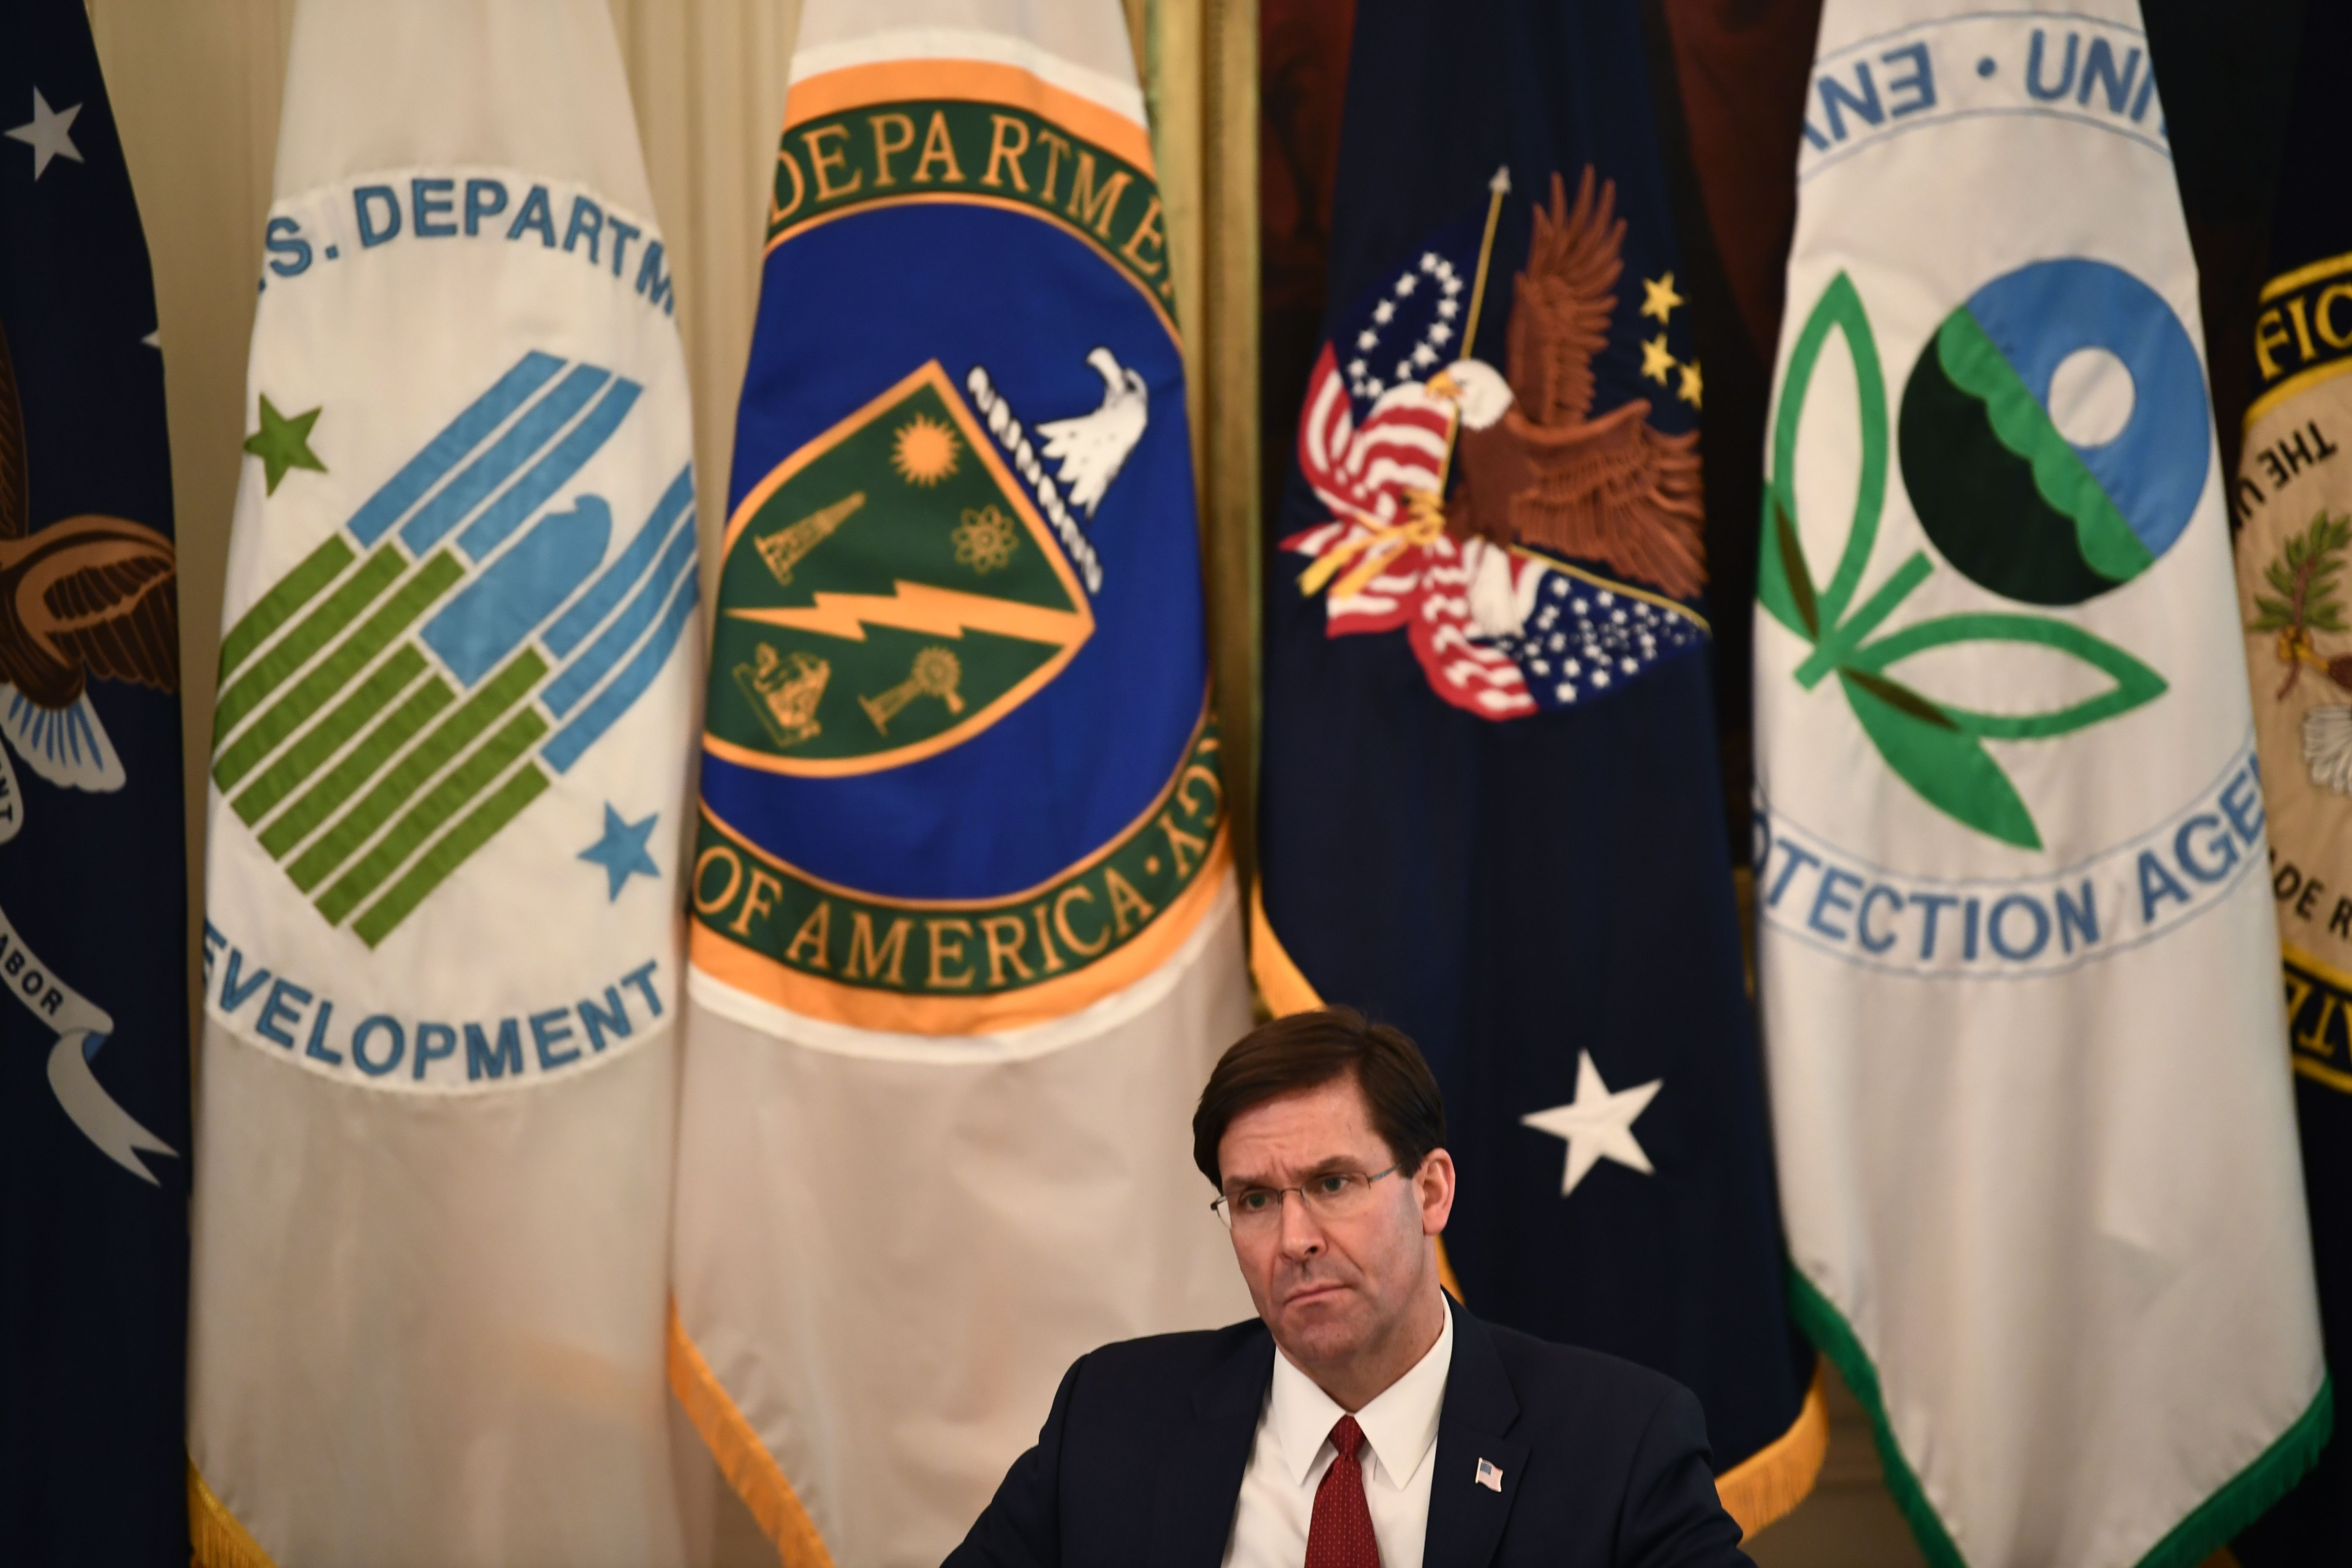 US Defense Secretary Mark Esper attends a meeting with President Donald Trump and his cabinet on May 19, 2020 in the Cabinet Room of the White House in Washington, DC. (Photo by BRENDAN SMIALOWSKI/AFP via Getty Images)